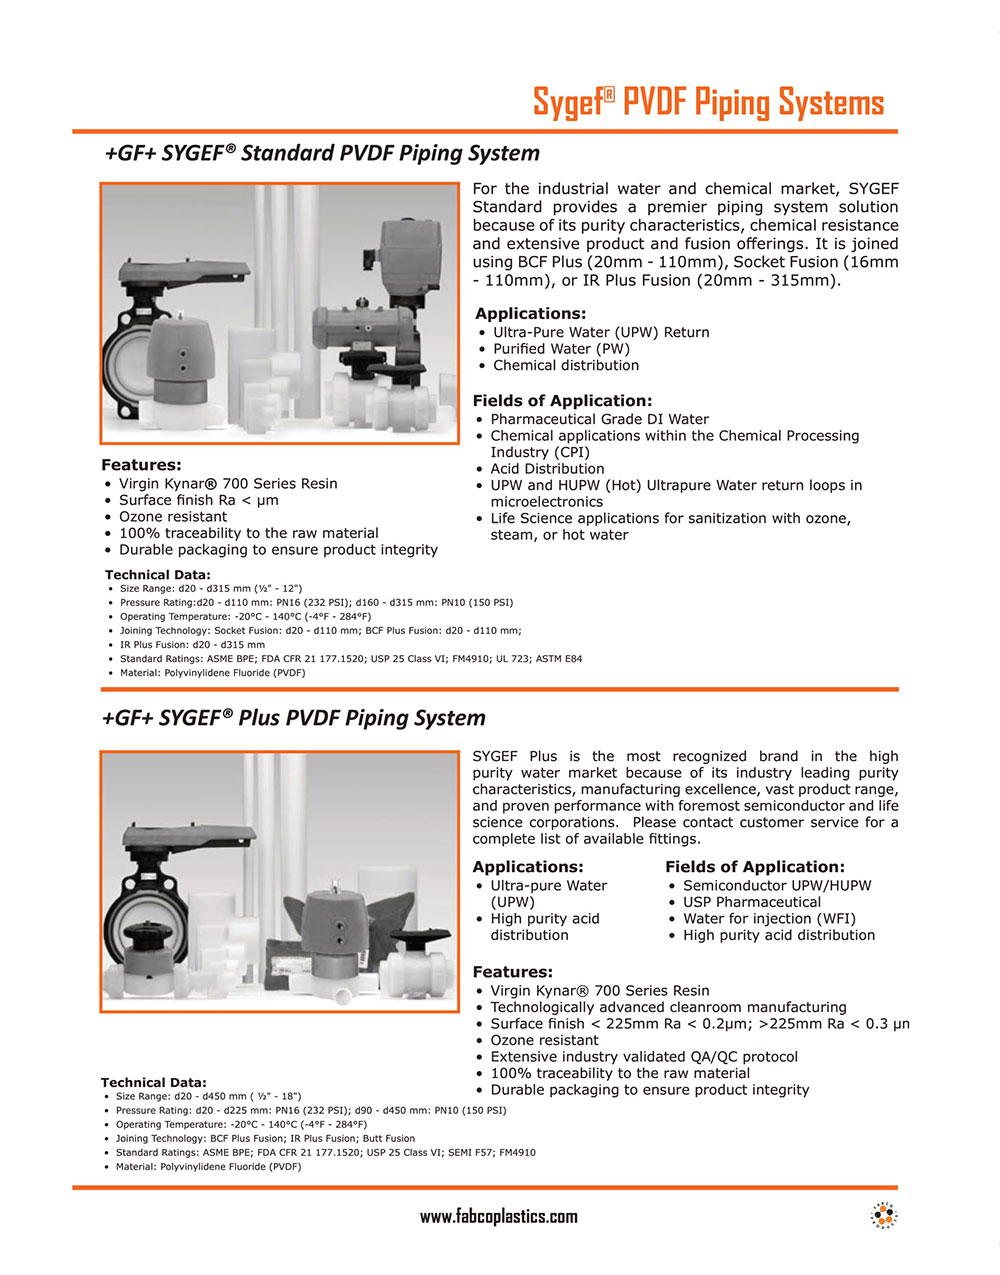 Sygef PVDF Piping Systems